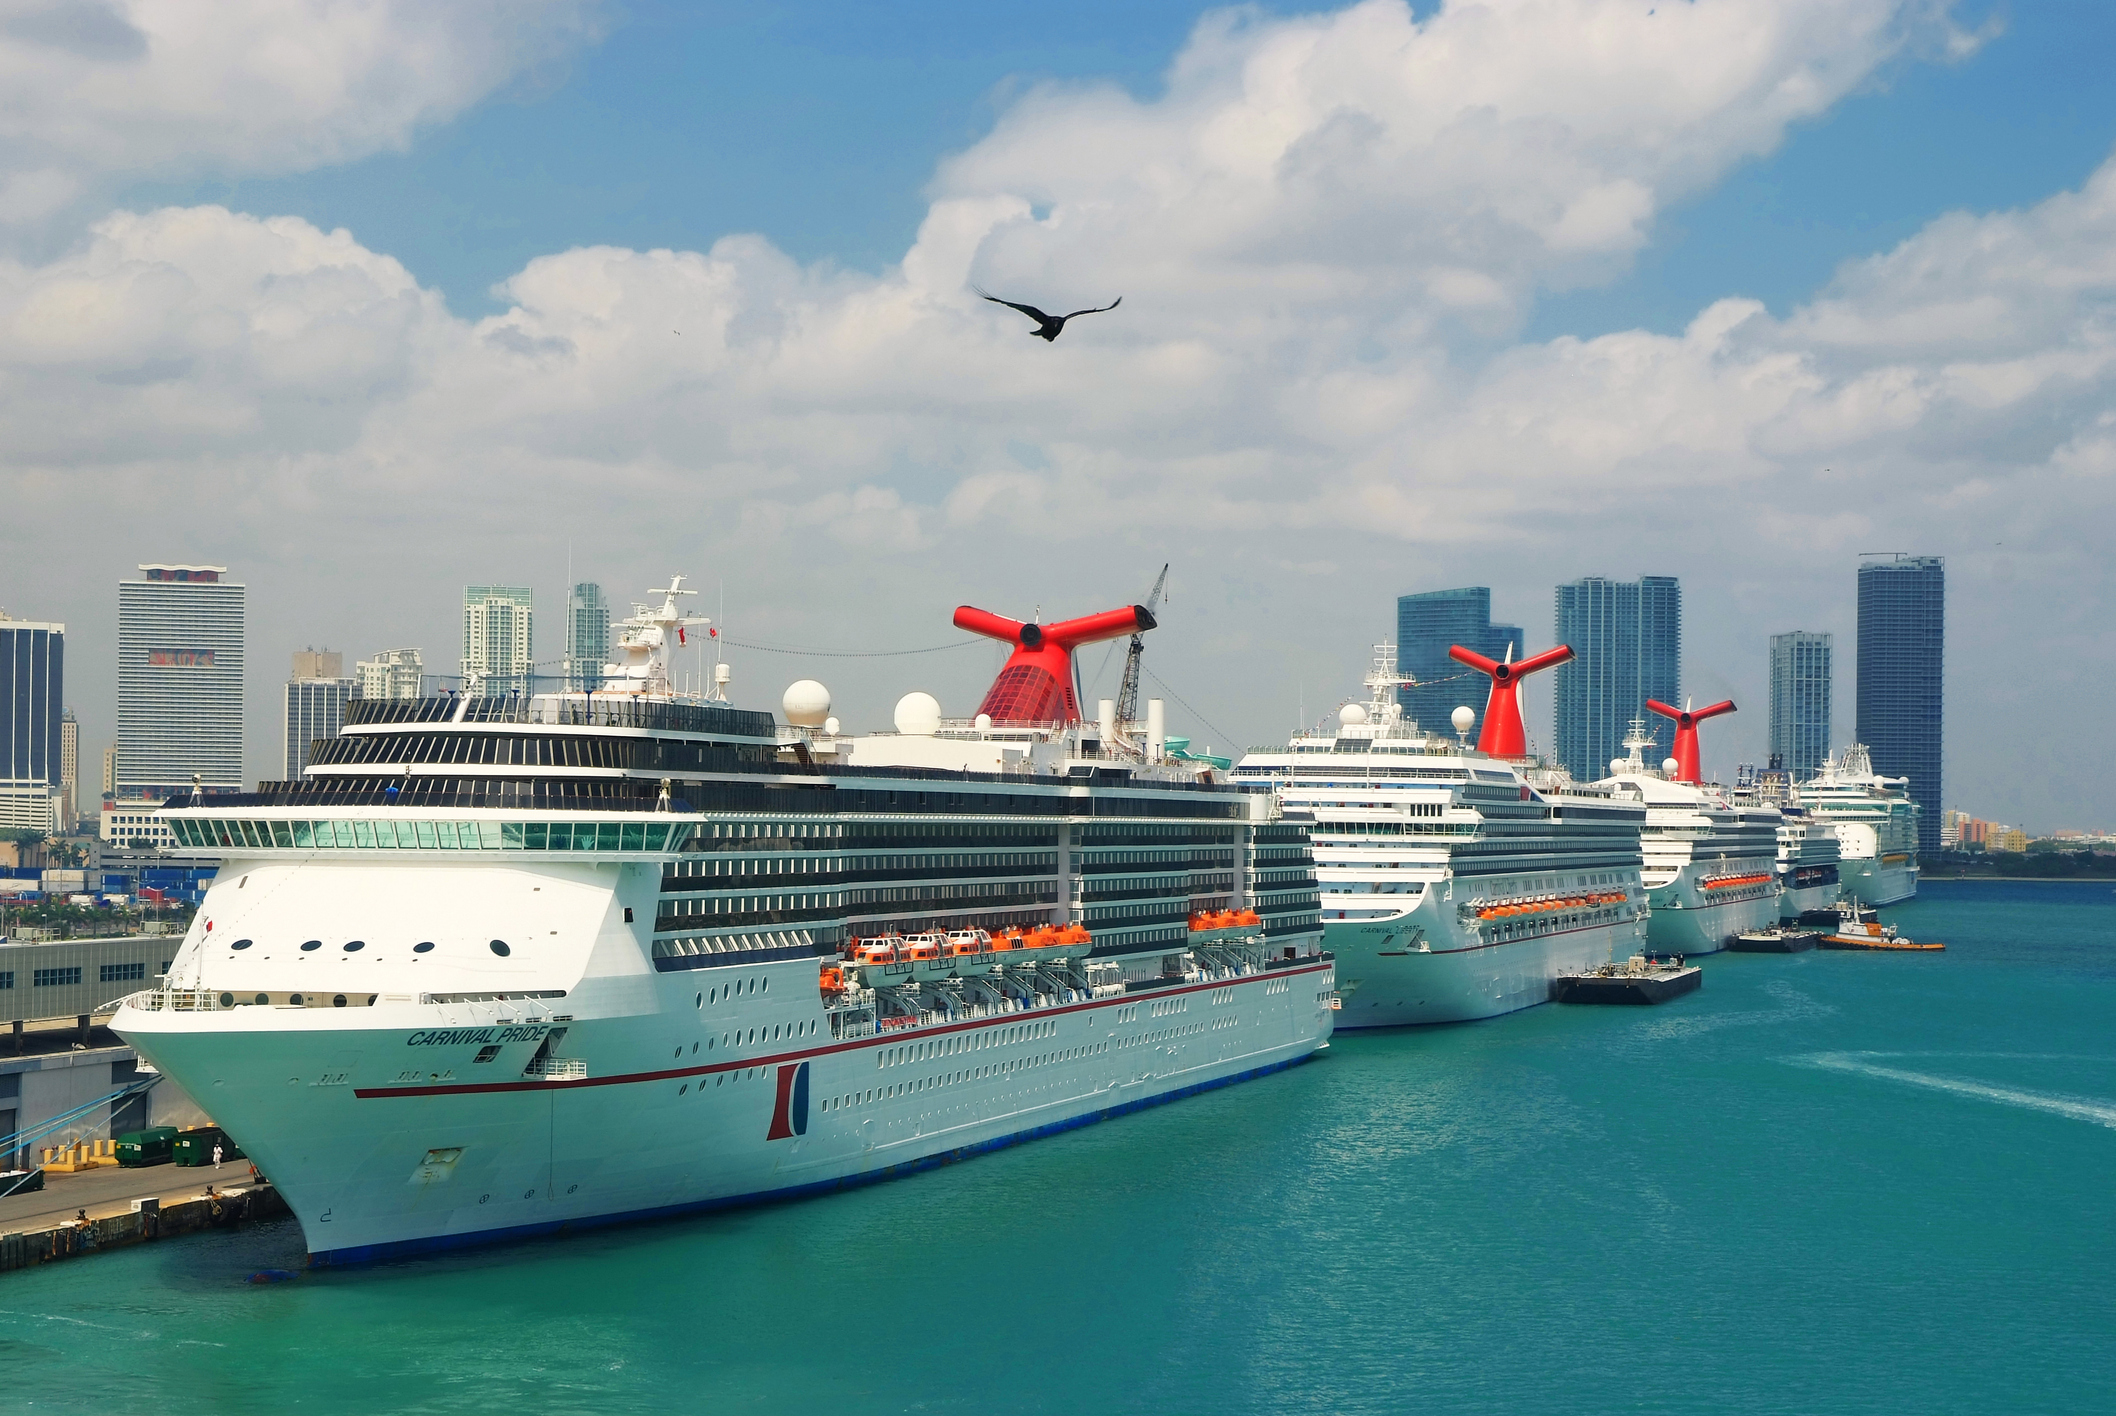 Carnival slapped with additional environmental requirements before return to sail – Travel Weekly